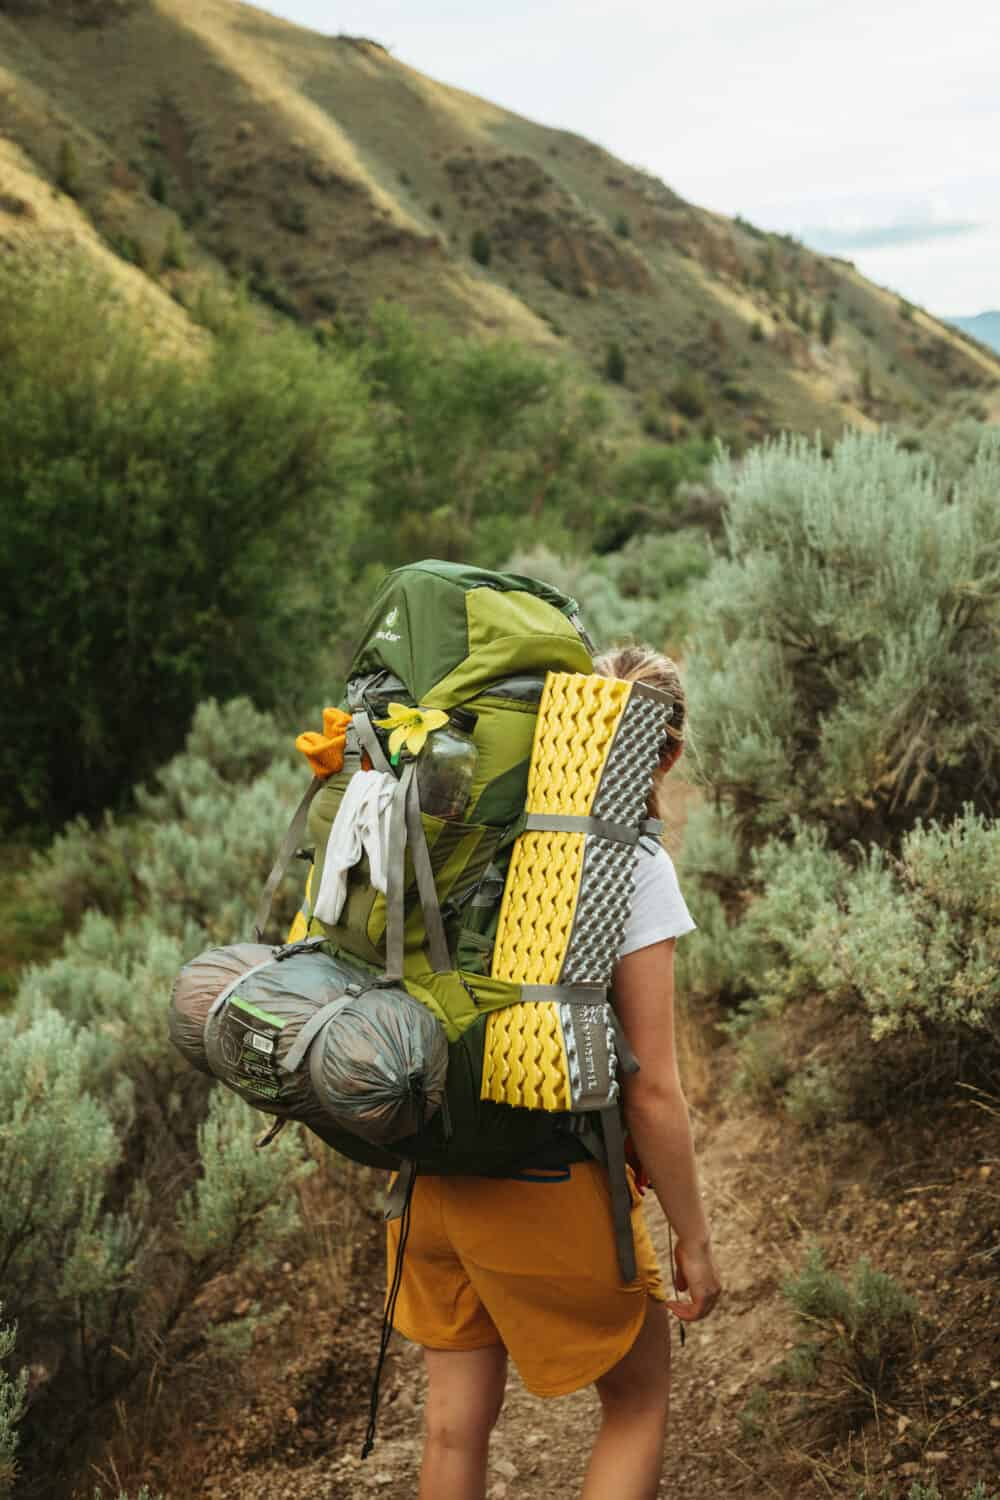 Packing for a trip to the hot springs in Idaho